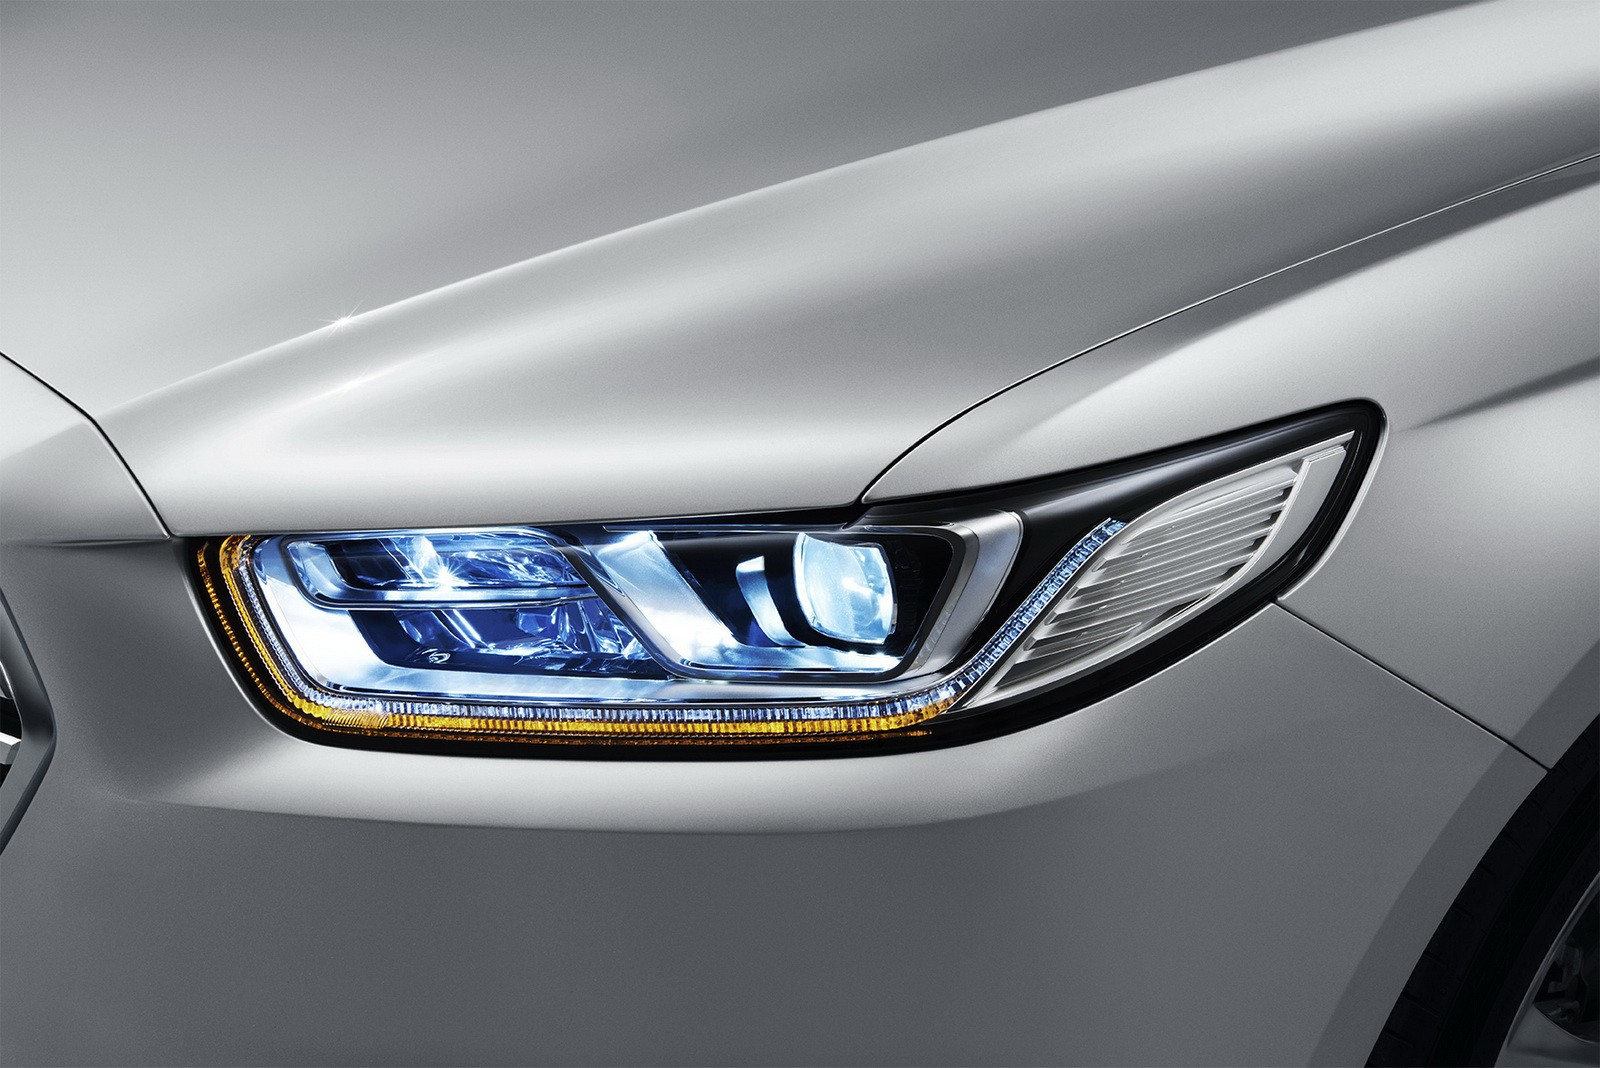 2016 Ford Taurus Makes Online Appearance Before Auto Shanghai 2015 Debut - autoevolution